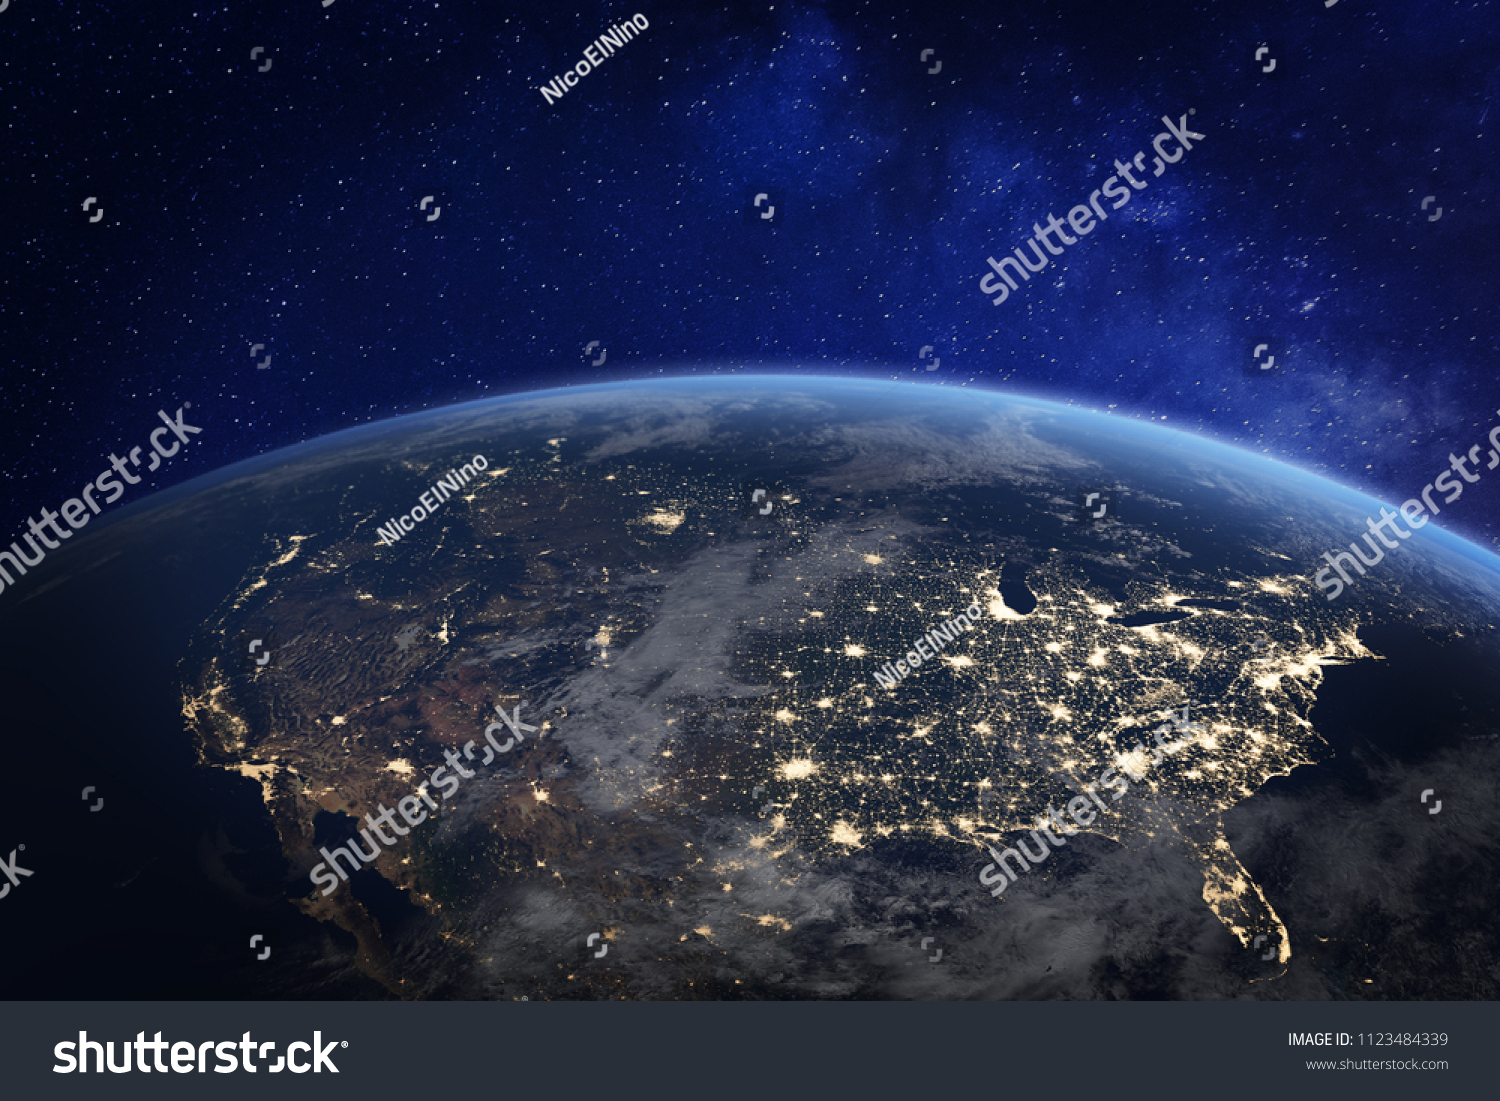 USA and North America from space at night with city lights showing human activity in United States, Canada and Mexico, New York, California, 3d rendering of planet Earth, elements from NASA #1123484339